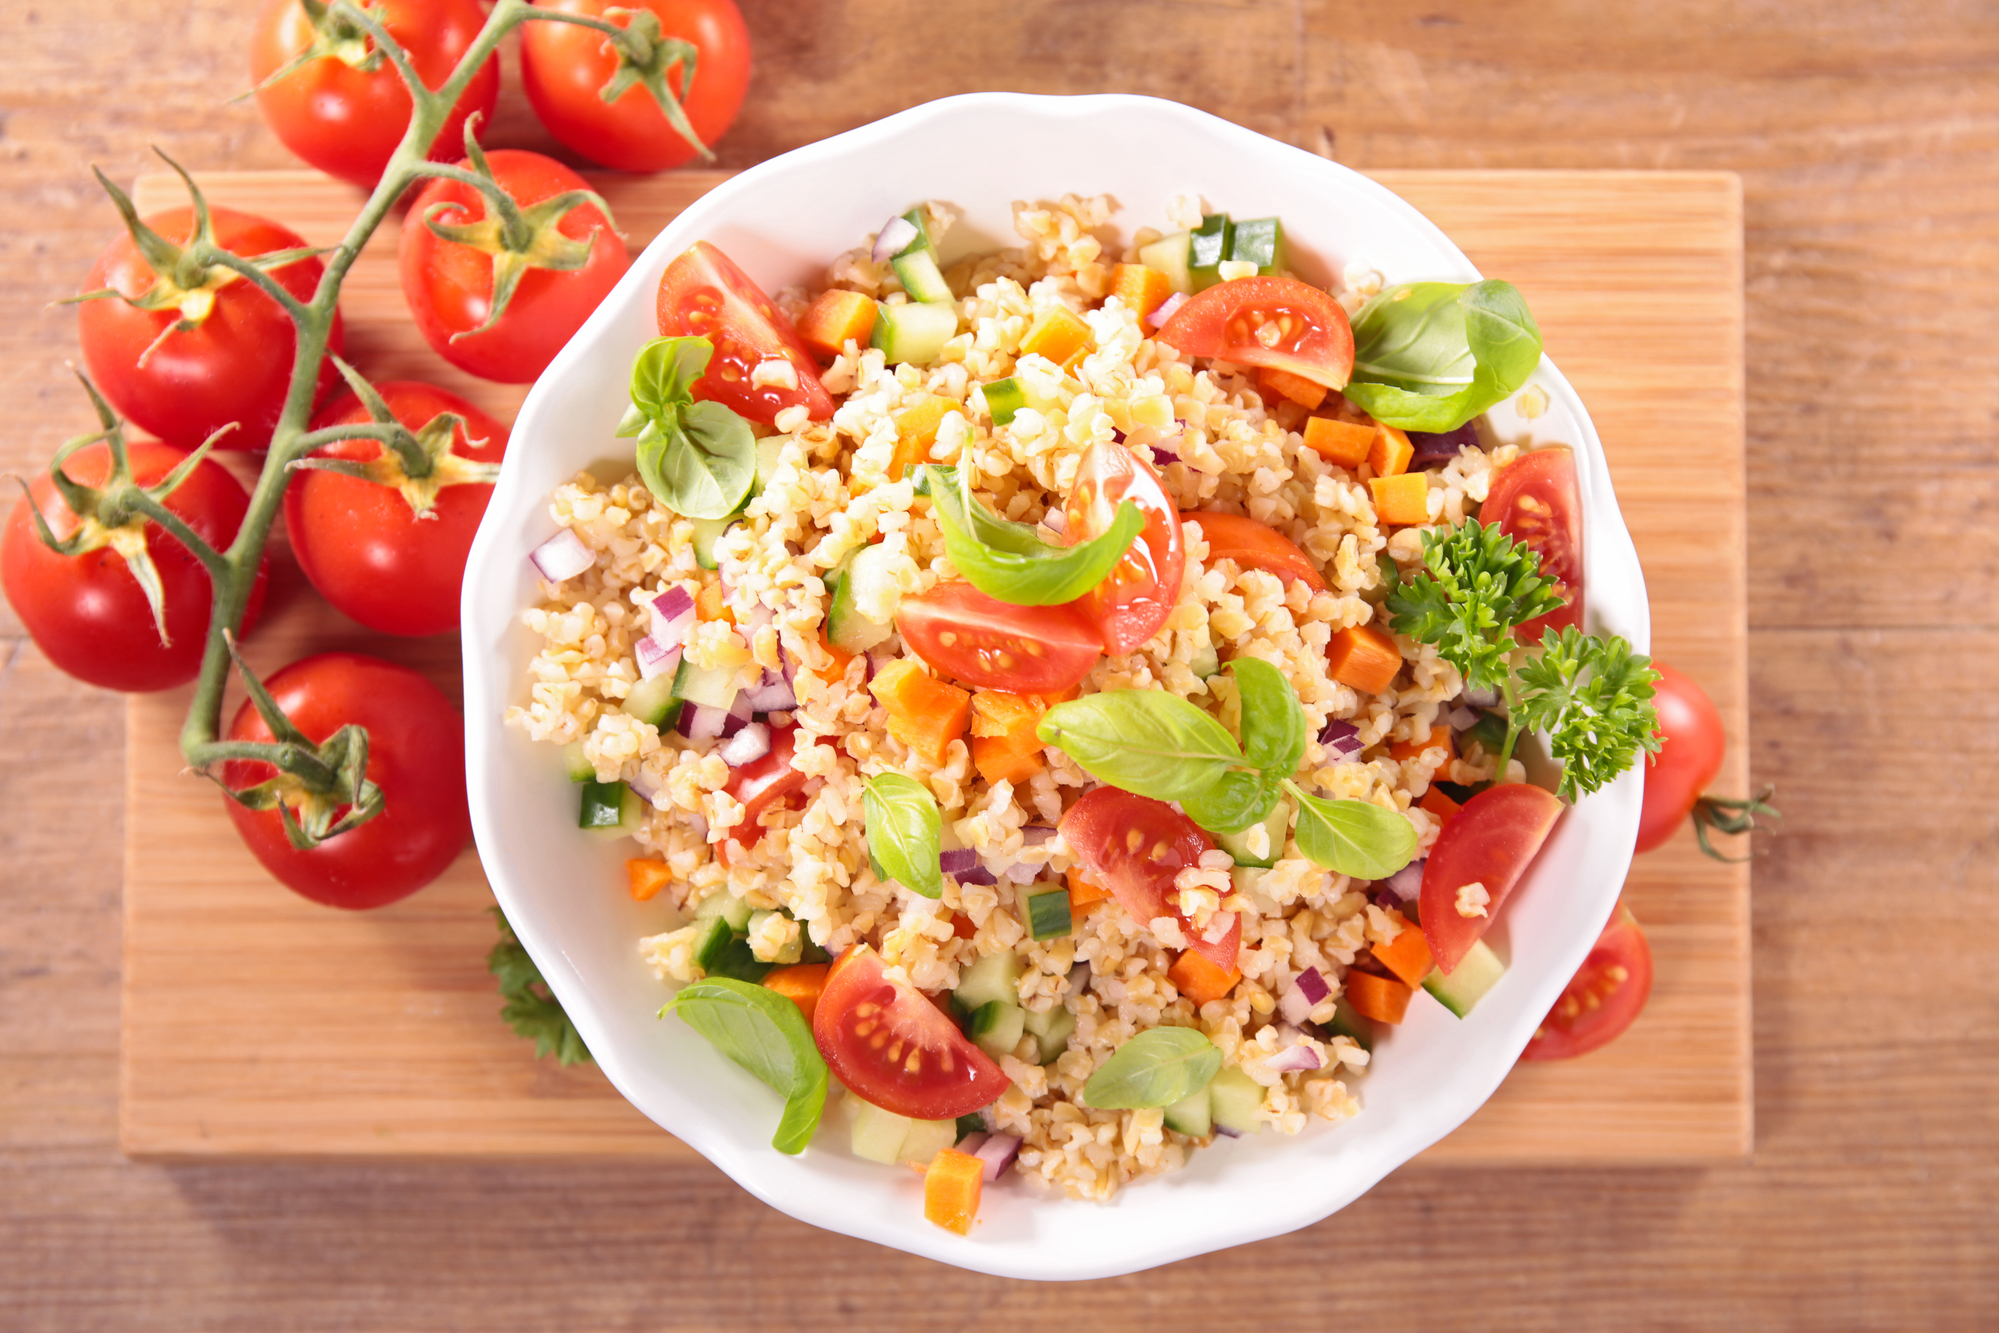 Cool Down with a Quinoa Salad